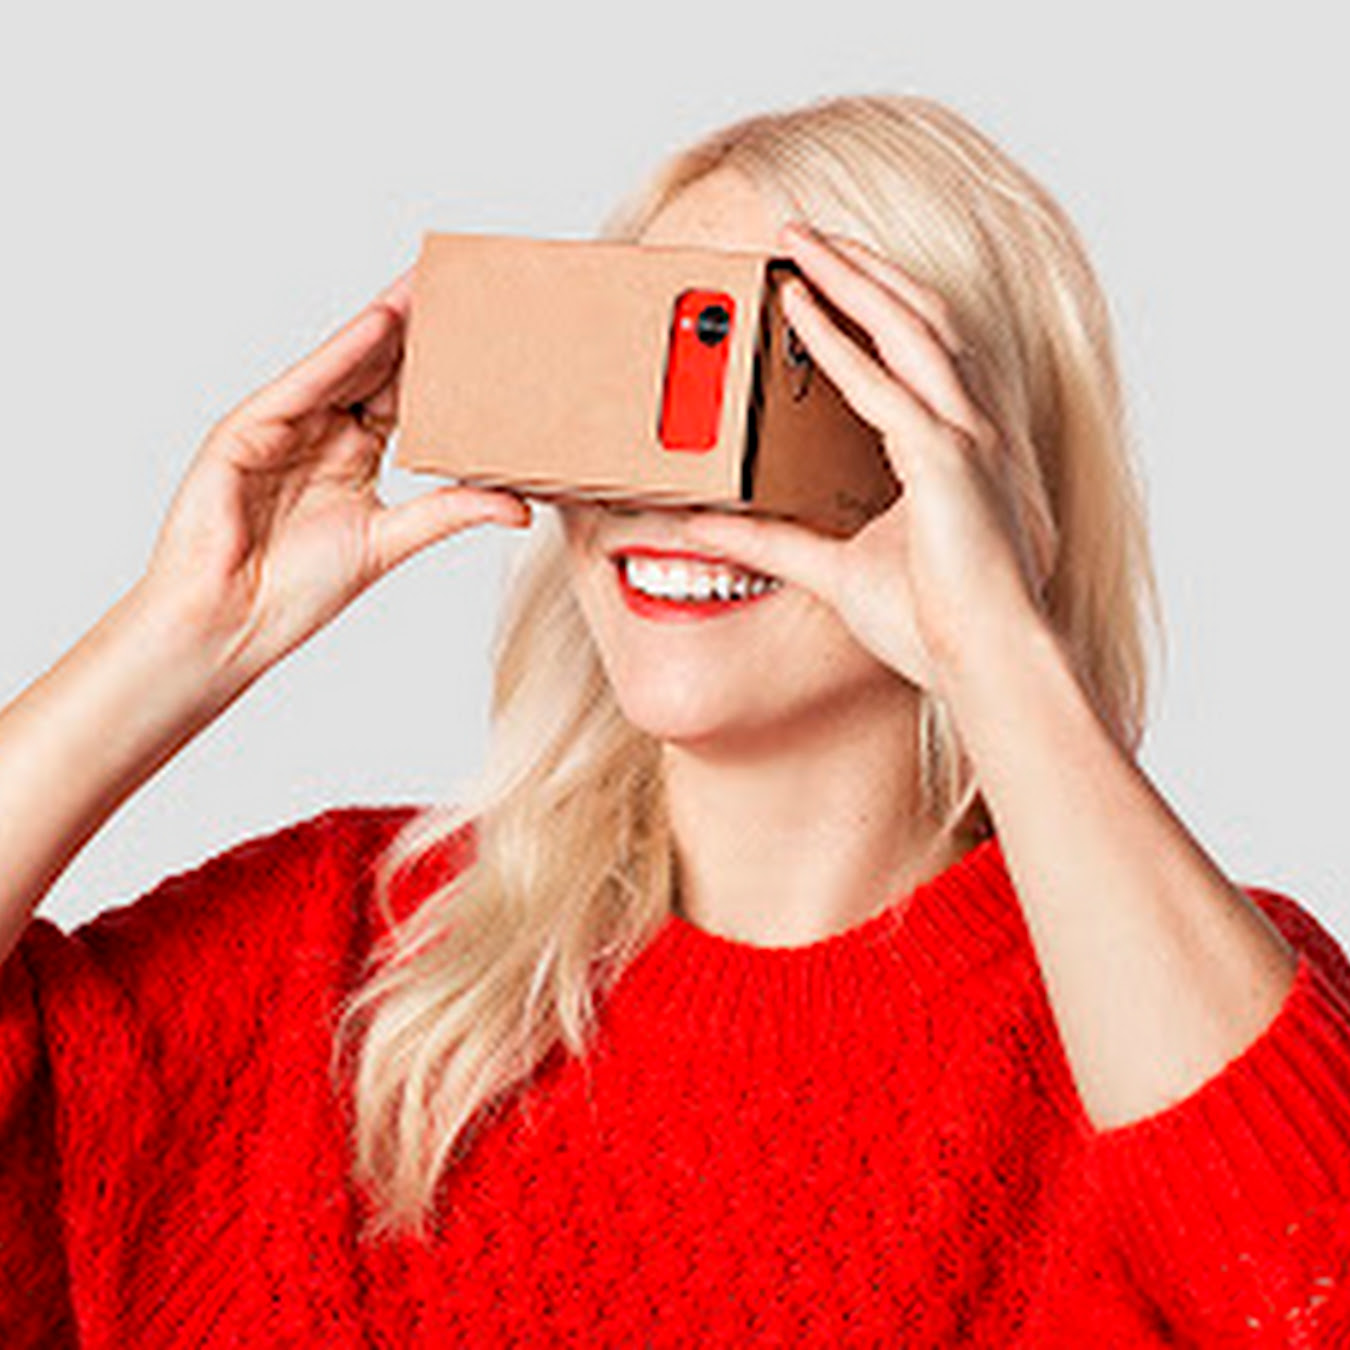 Google Cardboard App Now Available in Over 100 Countries in 39 Languages